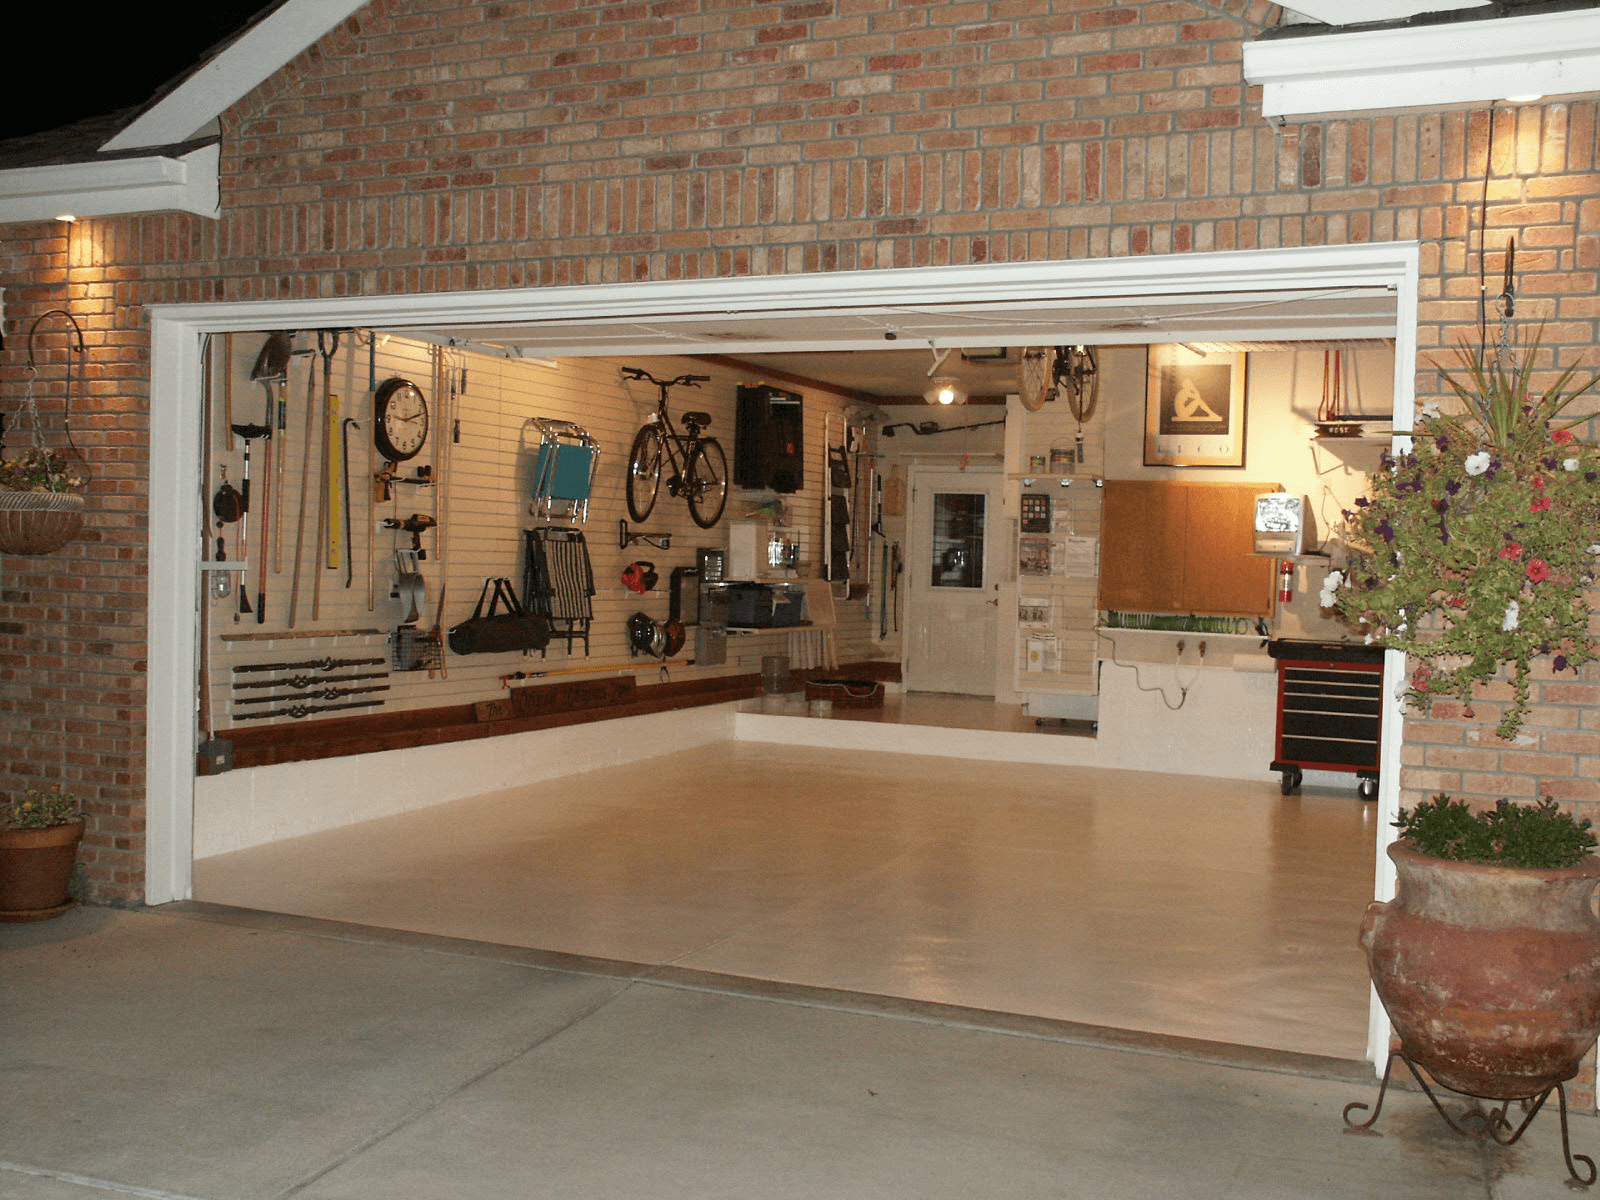 List of awesome ways to clean garages you never knew